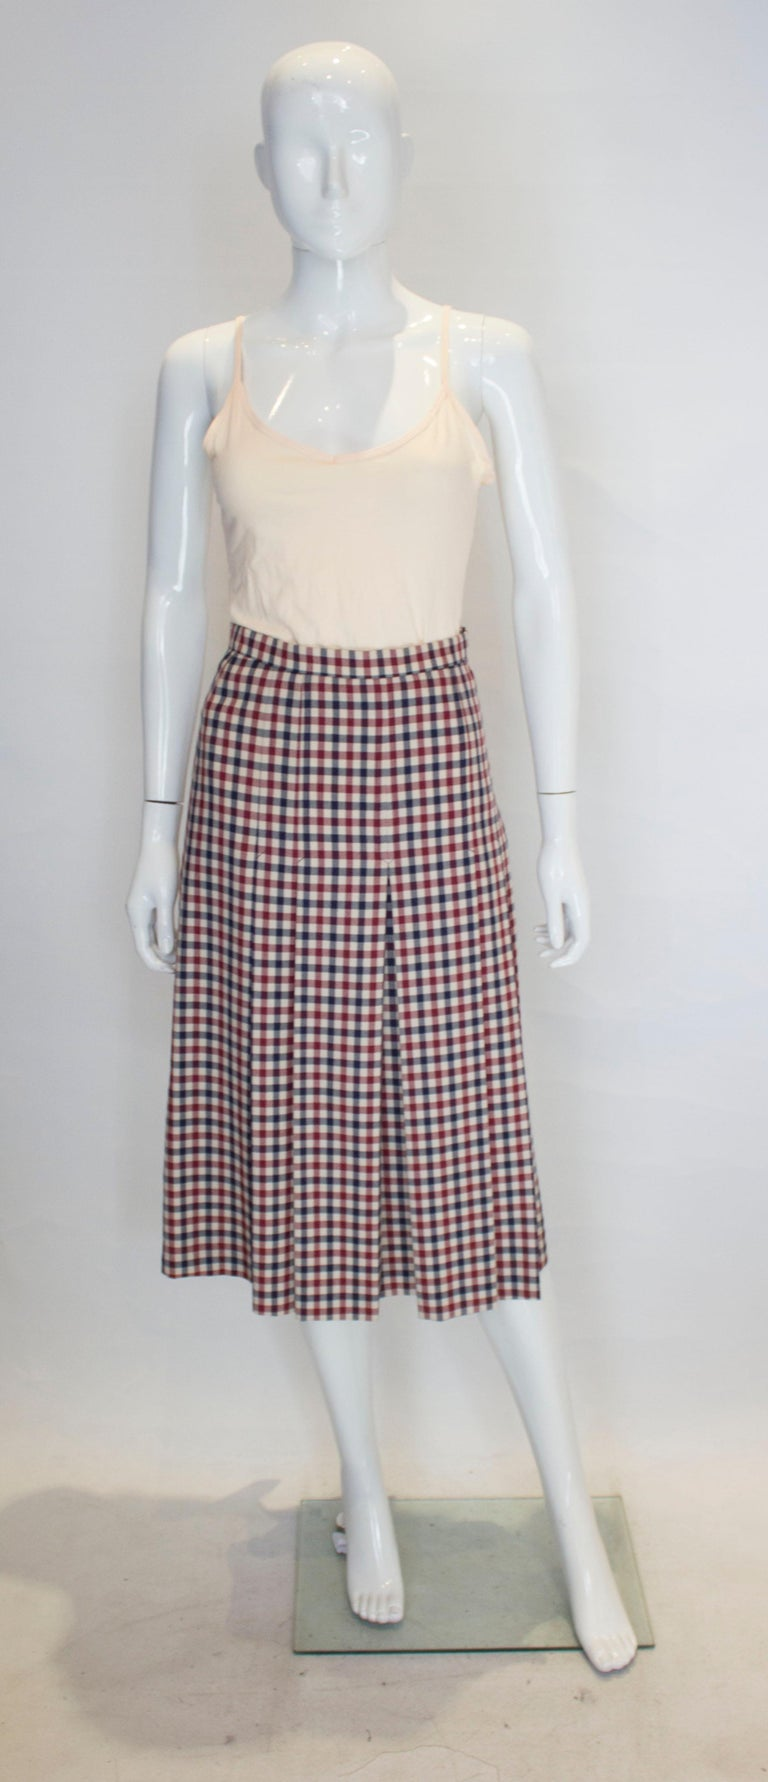 A great skirt for Fall, from British firm Acquasctutum. The skirt is in a burgundy, cream and blue check. It is knee length, fully lined with box pleats and a side zip.